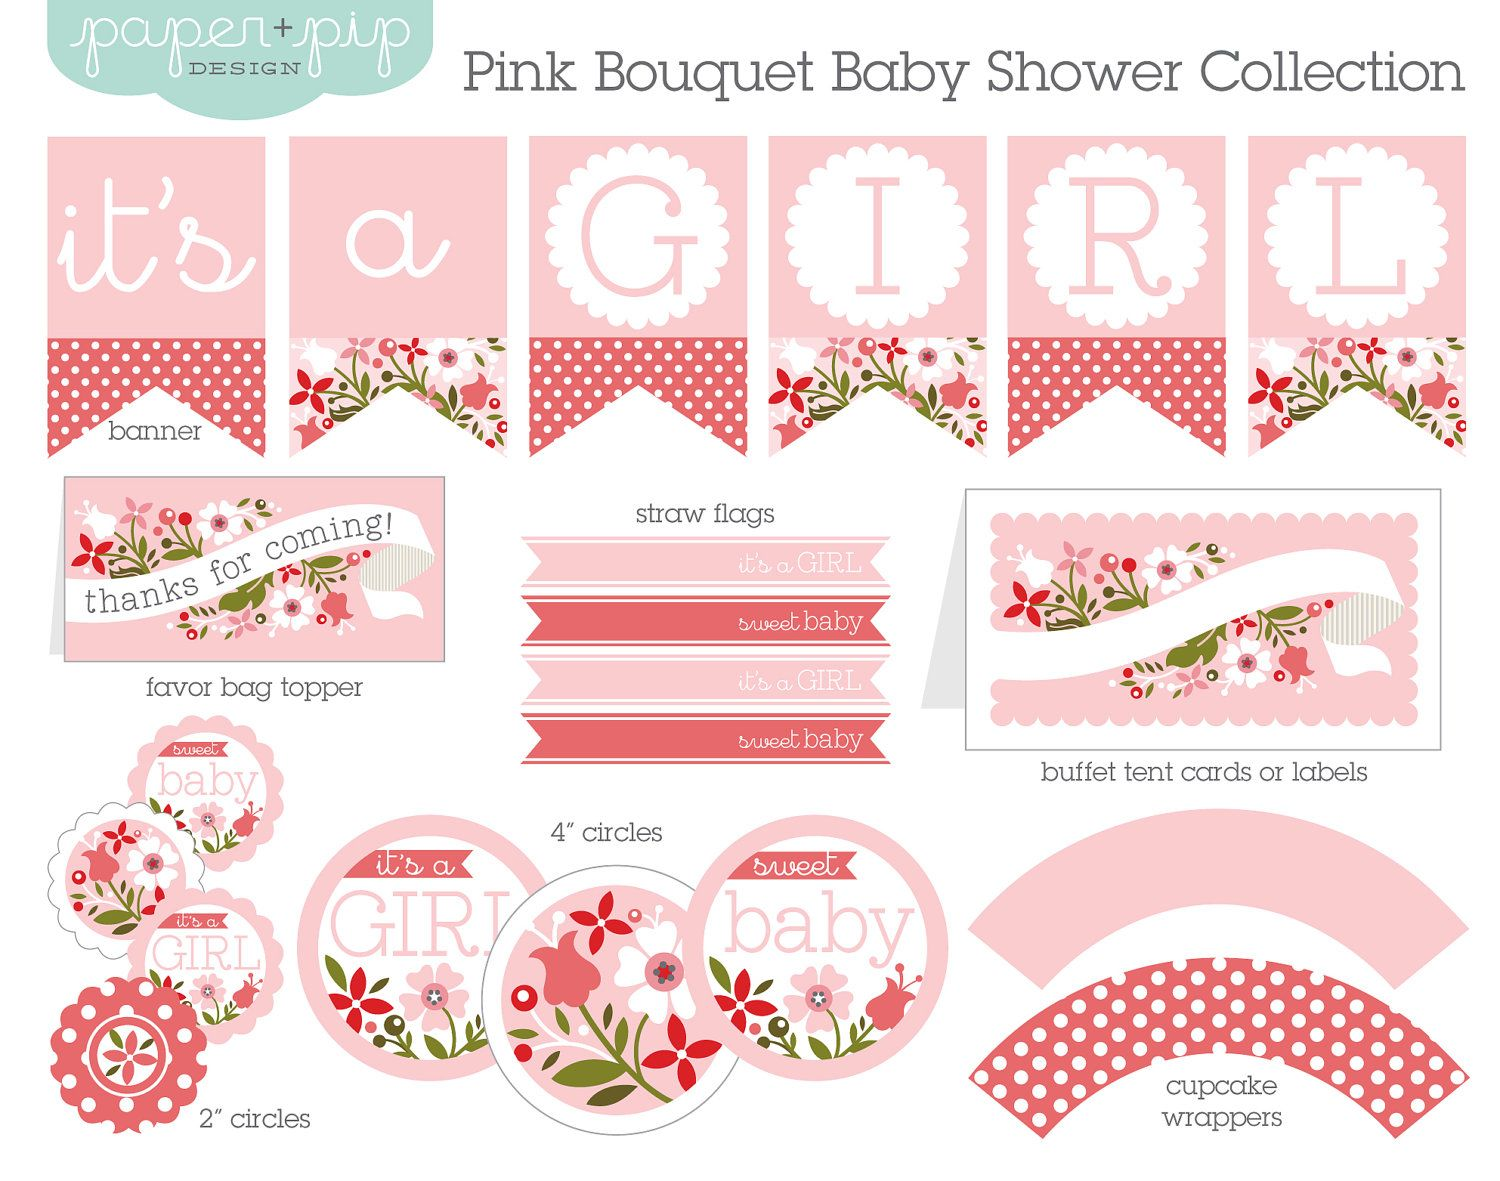 Baby Shower Decorations - Printable - Pink Bouquet | Pink bouquet ...